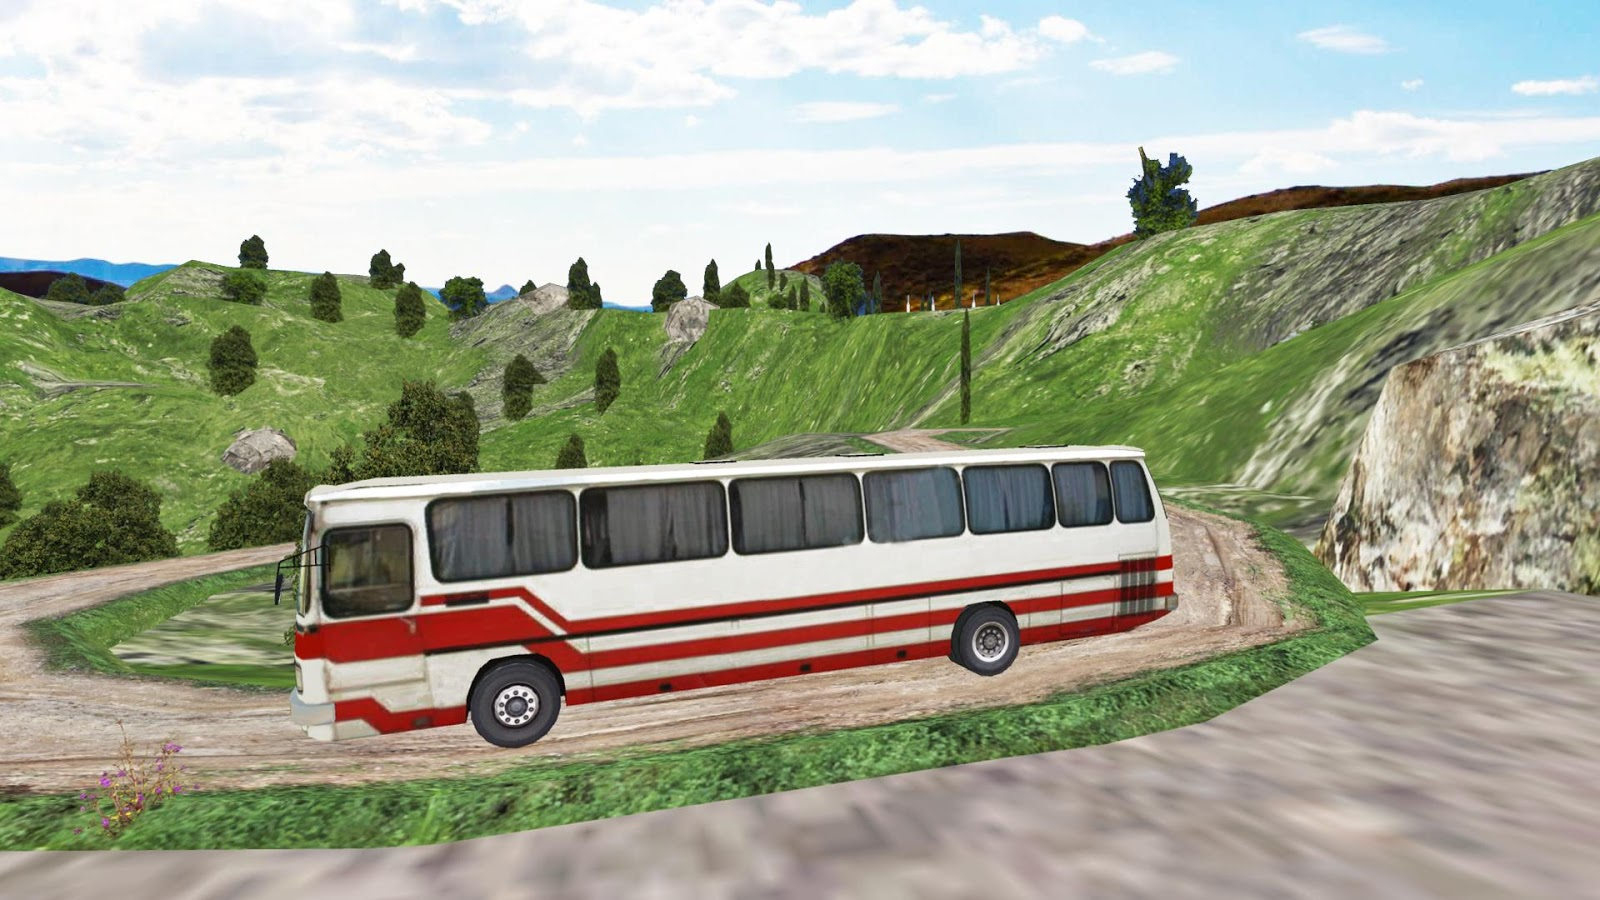 1600 x 900 jpeg 240kB, Bus Simulator 2015 Indir Android Pictures to